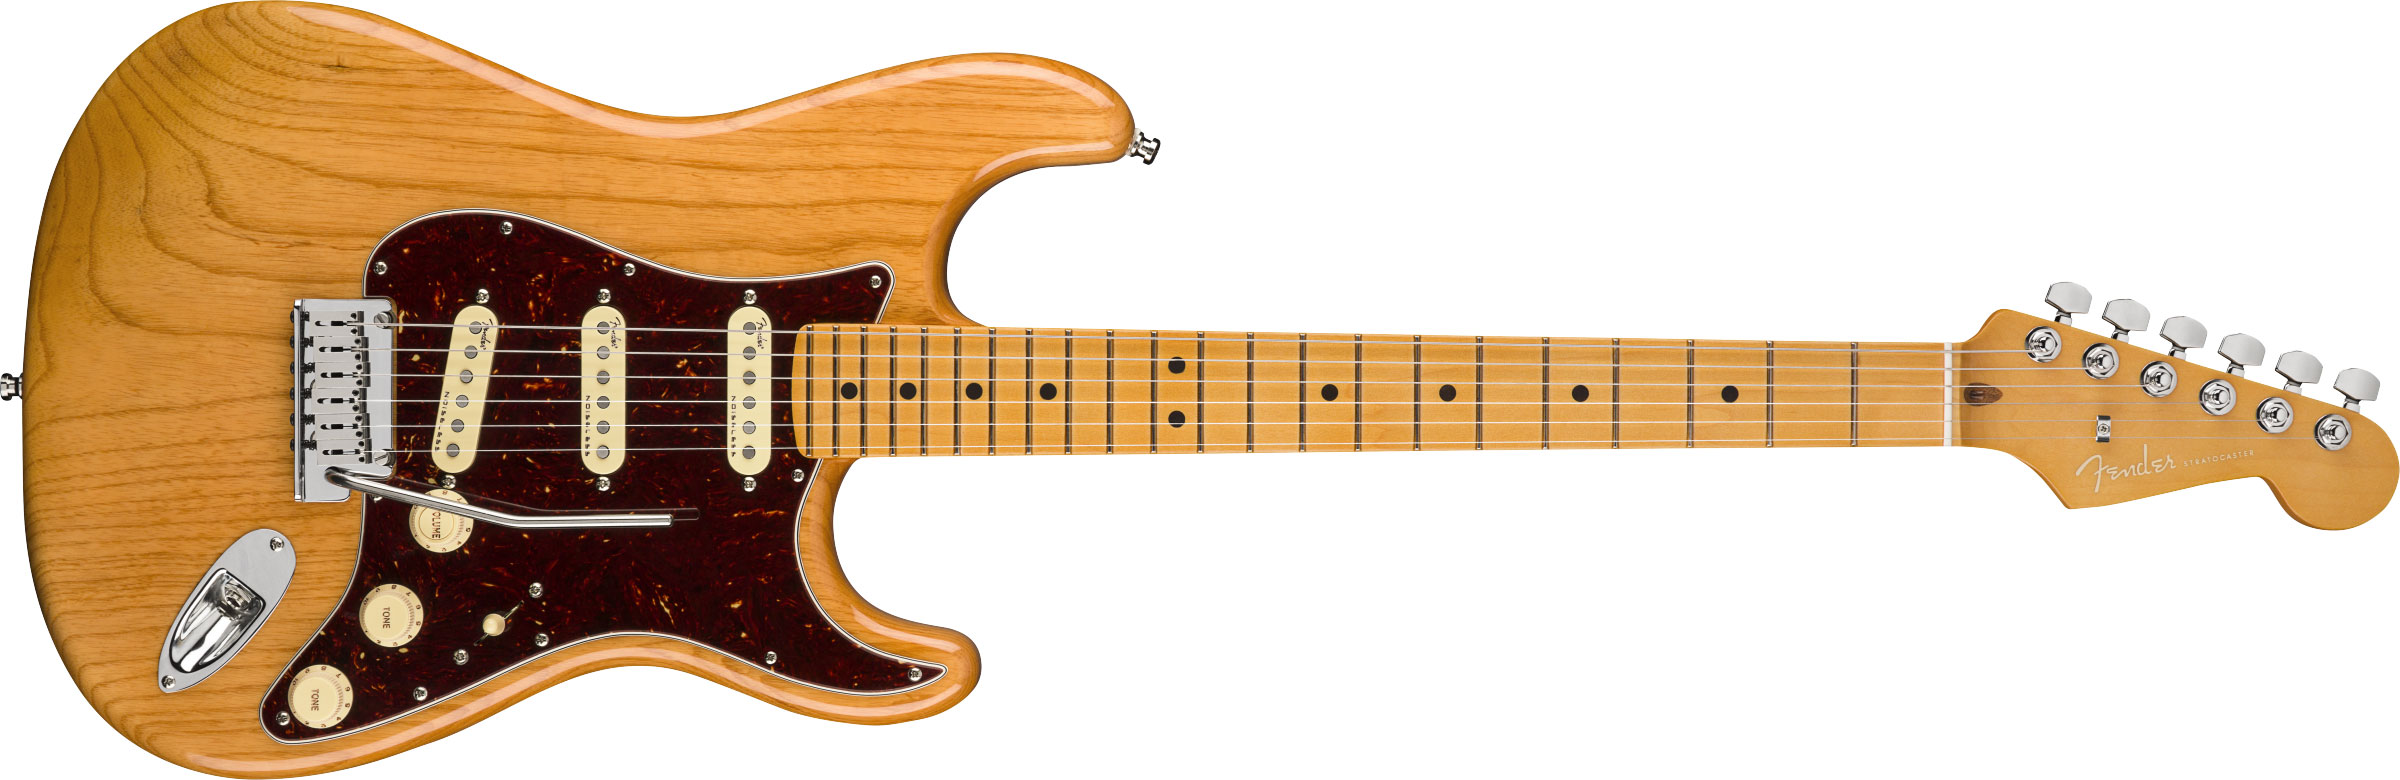 GUITARRA FENDER AM ULTRA STRATOCASTER MAPLE 011-8012-734 AGED NATURAL